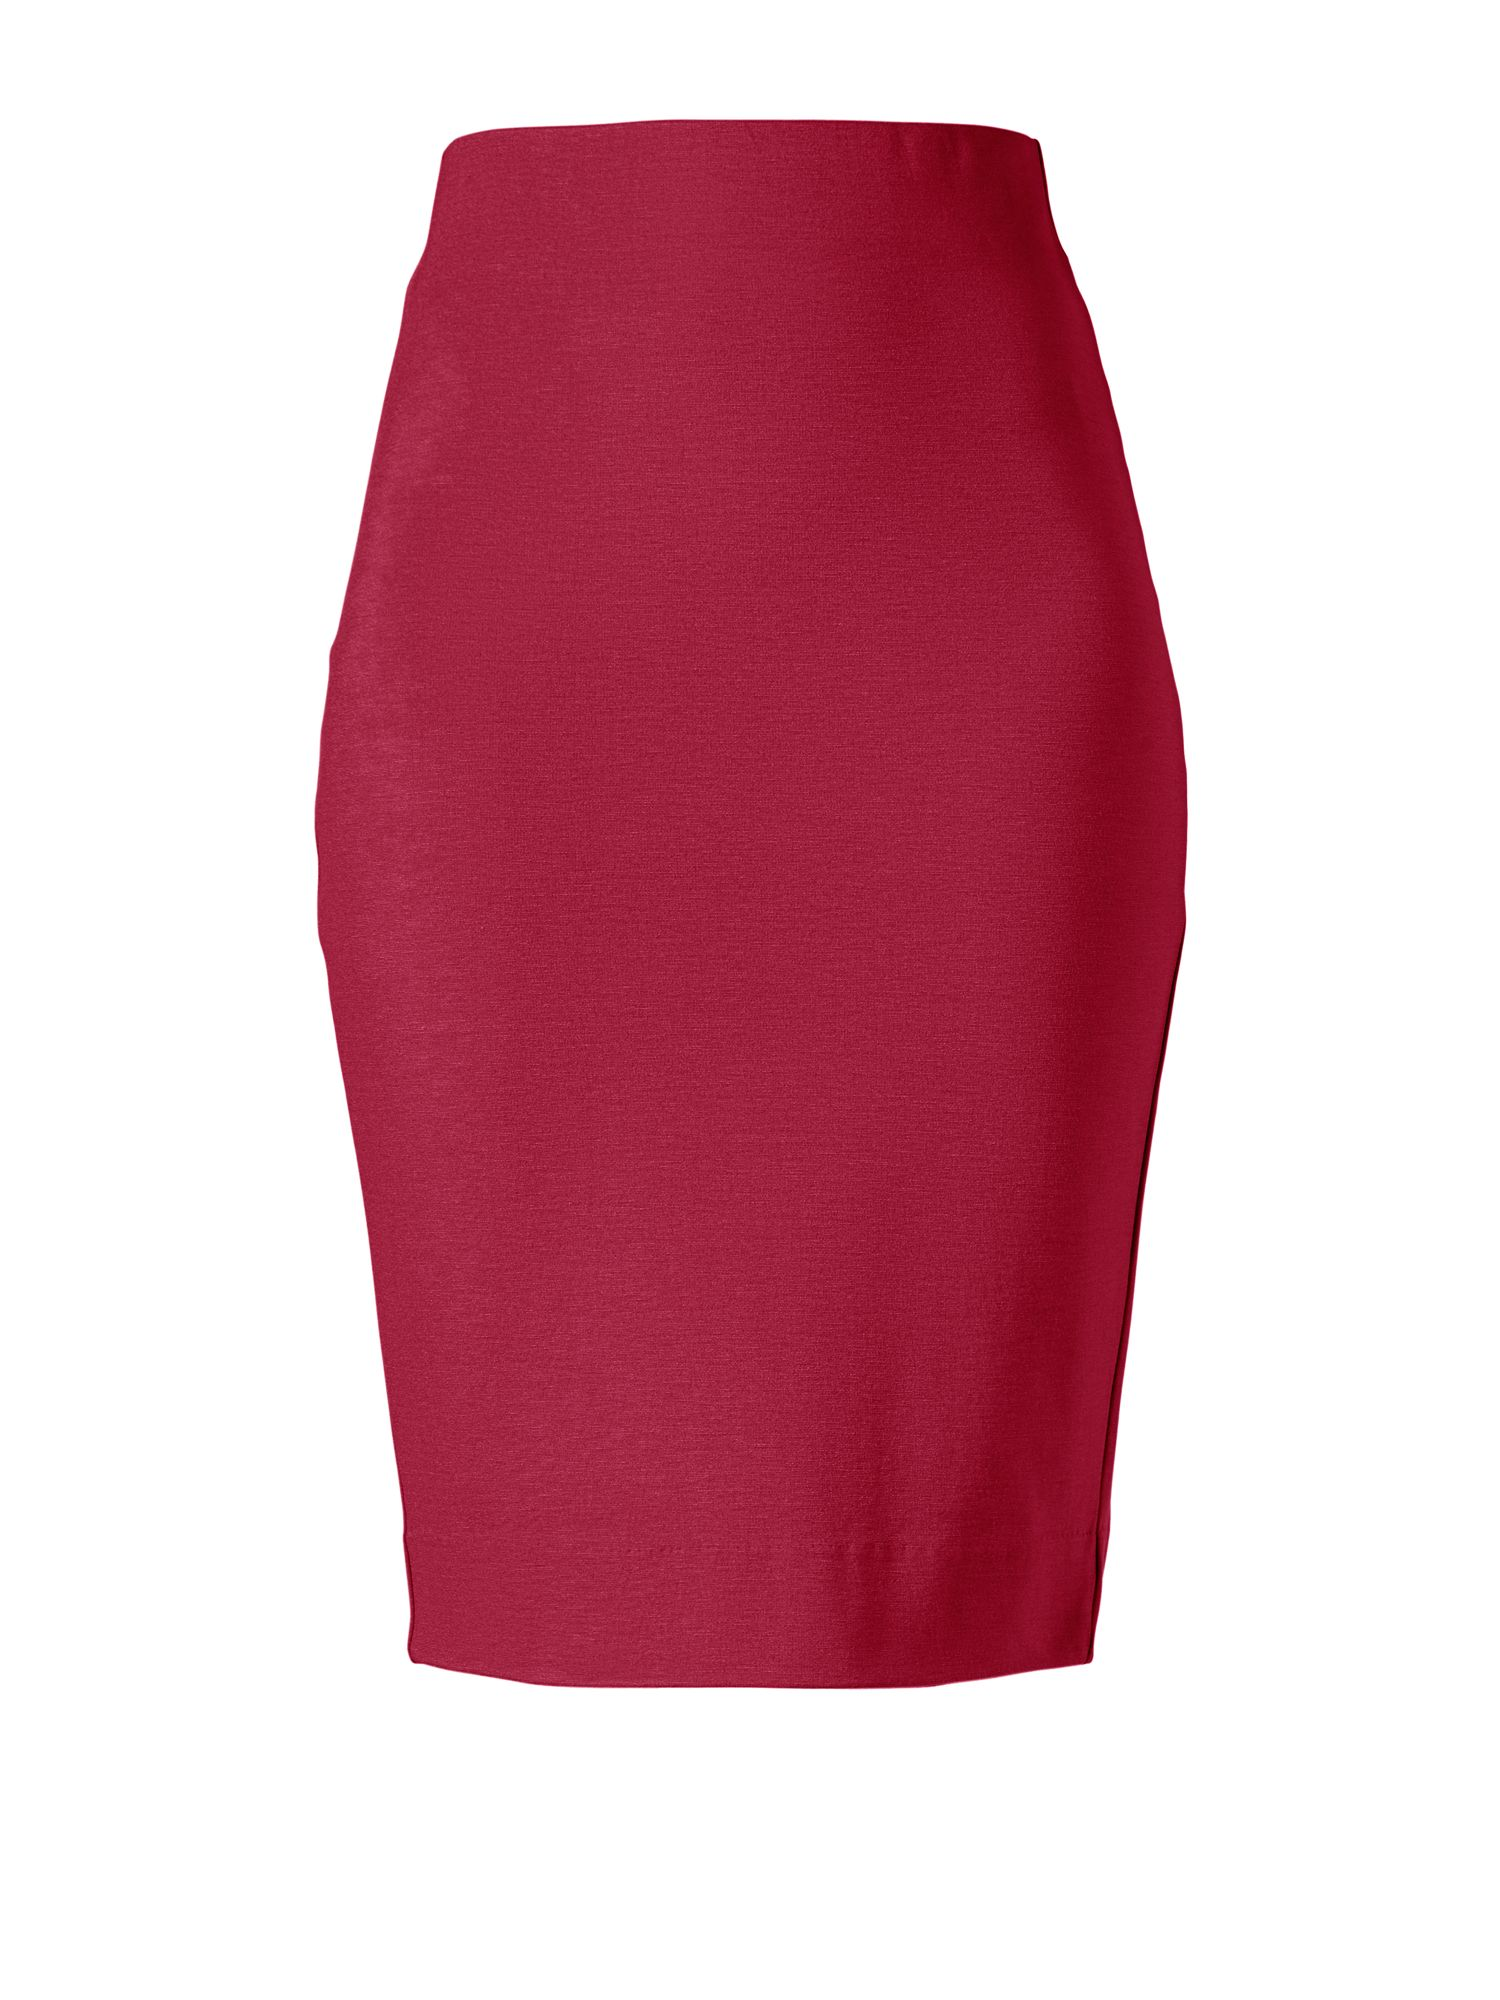 Winser London Miracle Pencil Skirt, Red